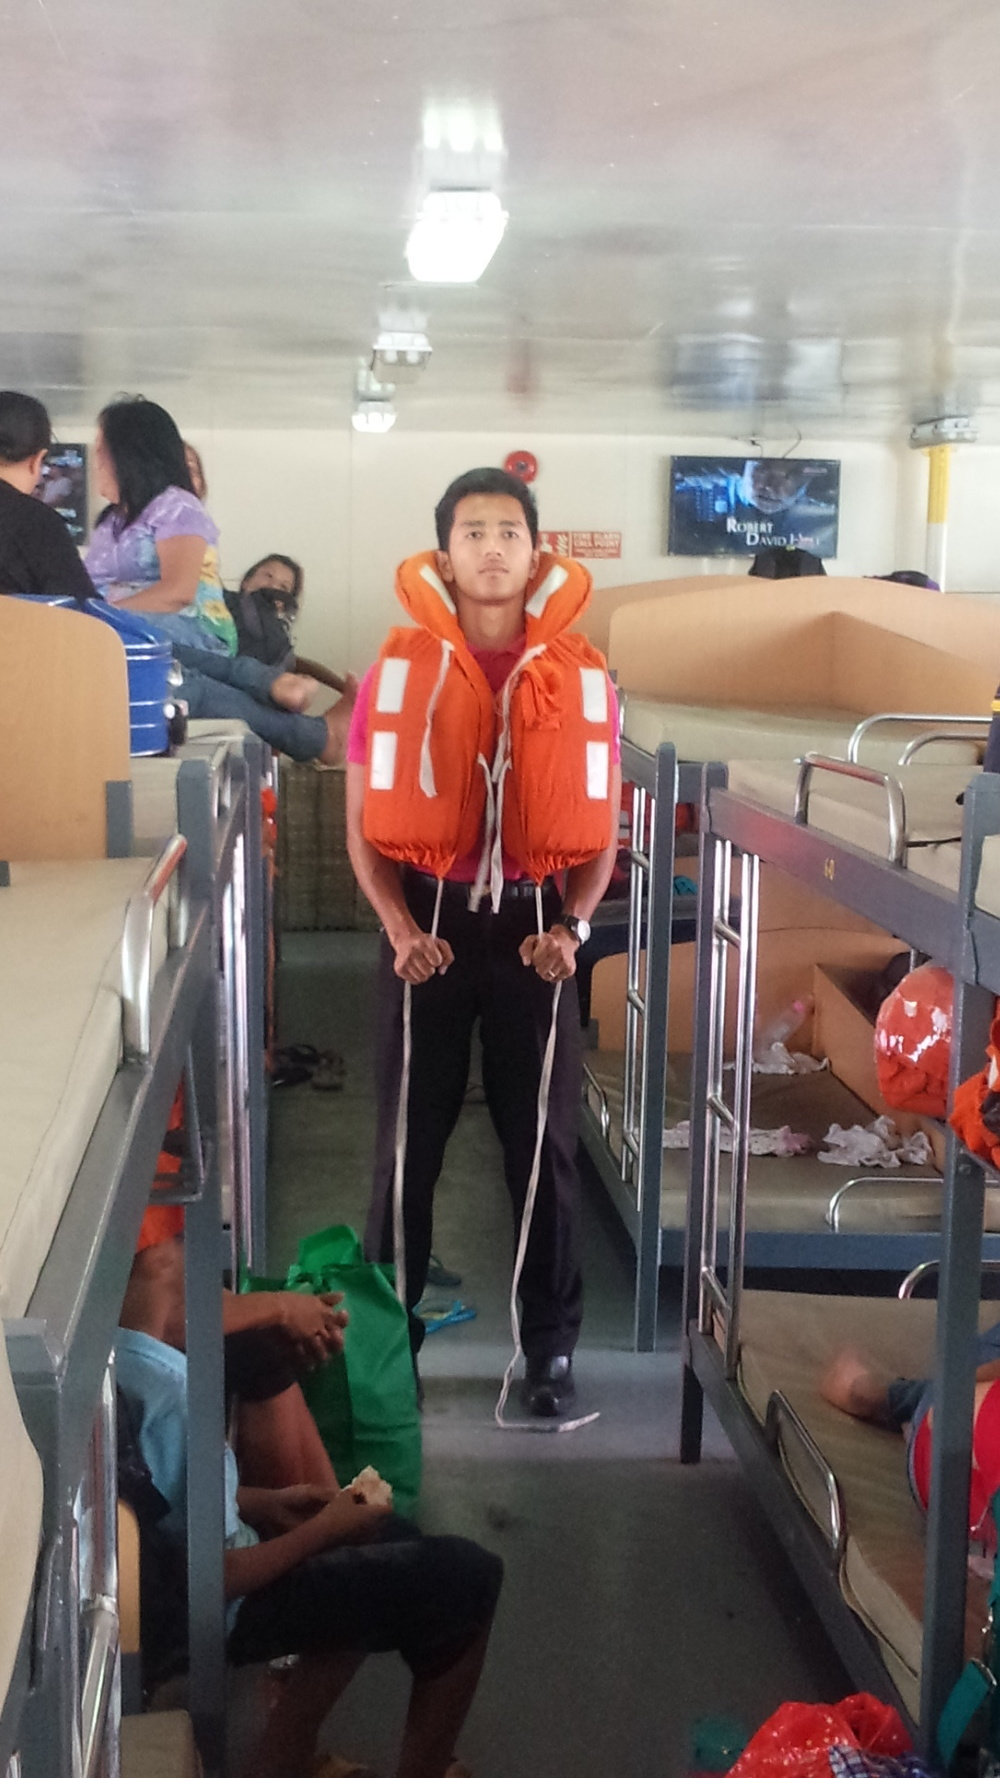 Life vest safety on 2GO travel